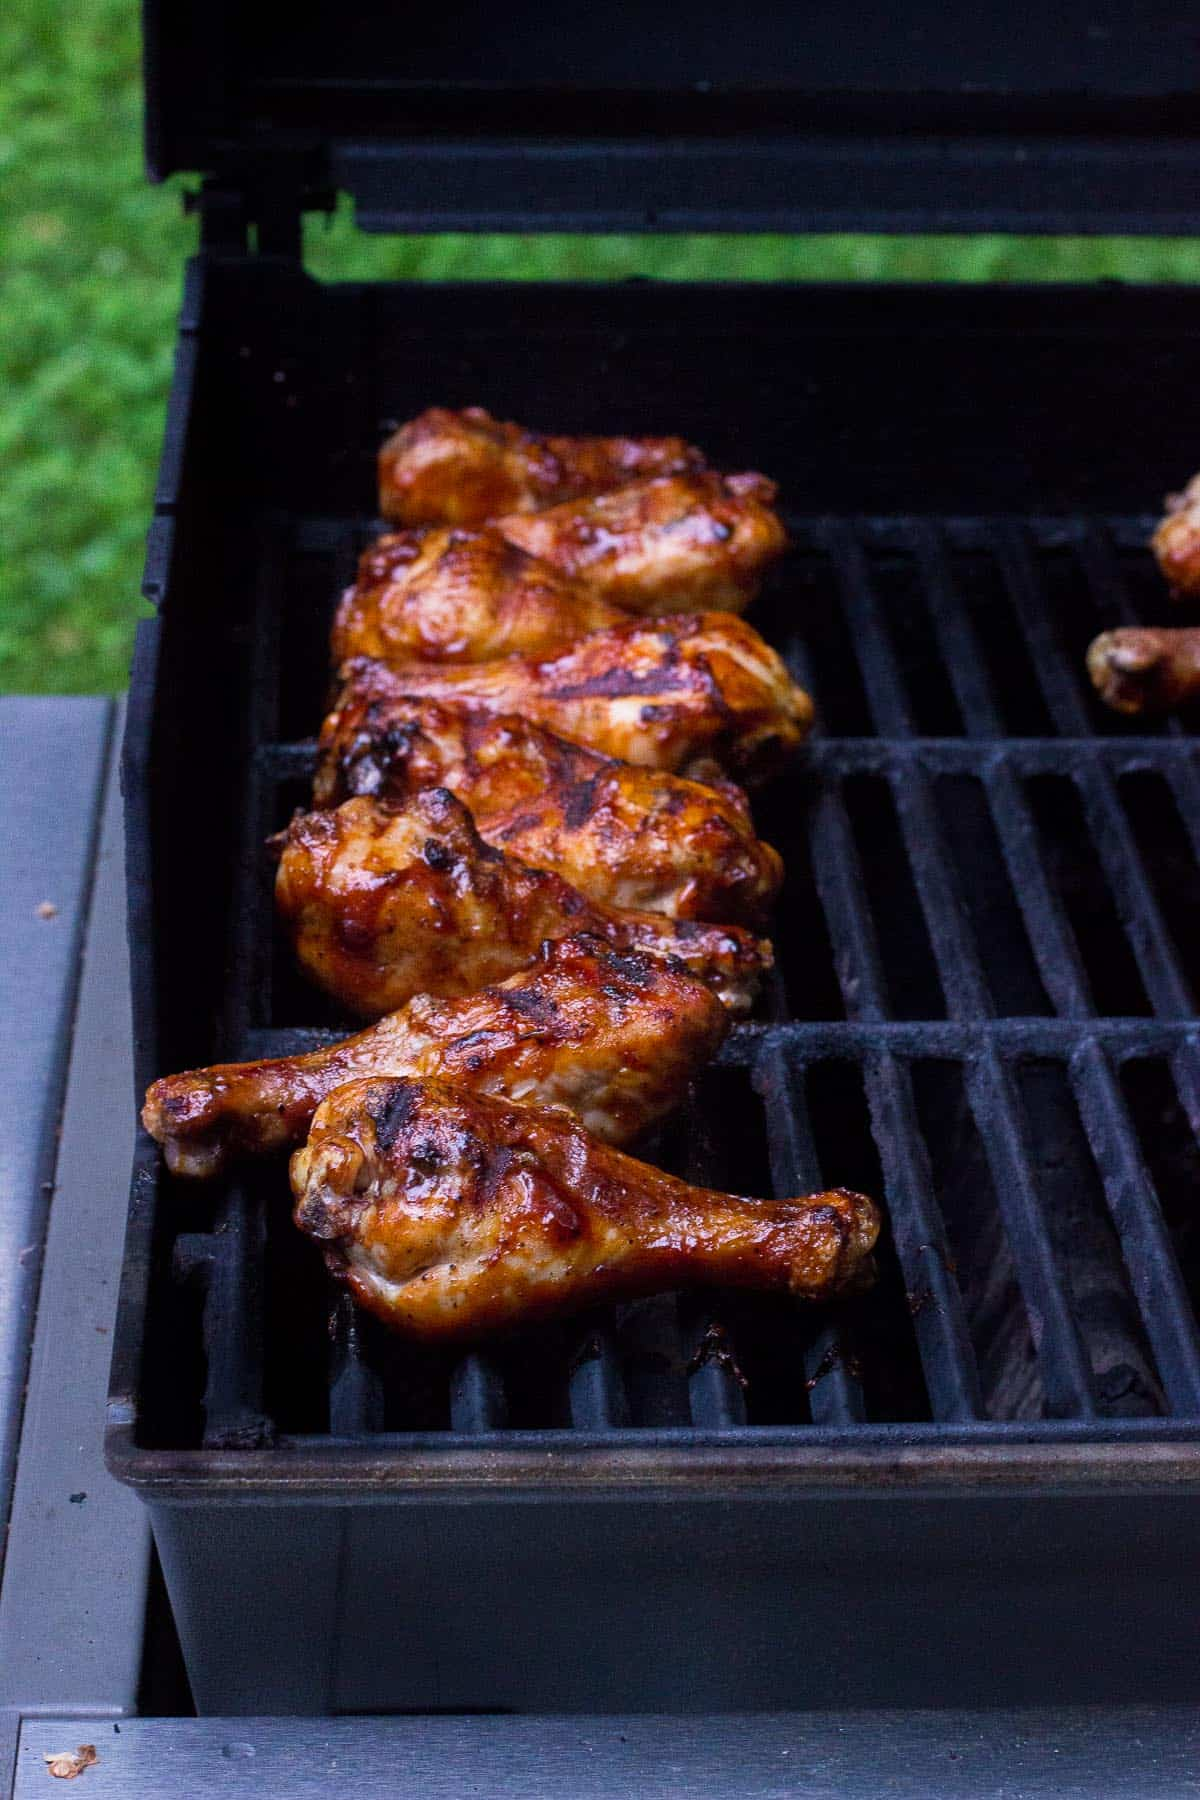 Grilled and basted chicken drumsticks lined up on the grill.